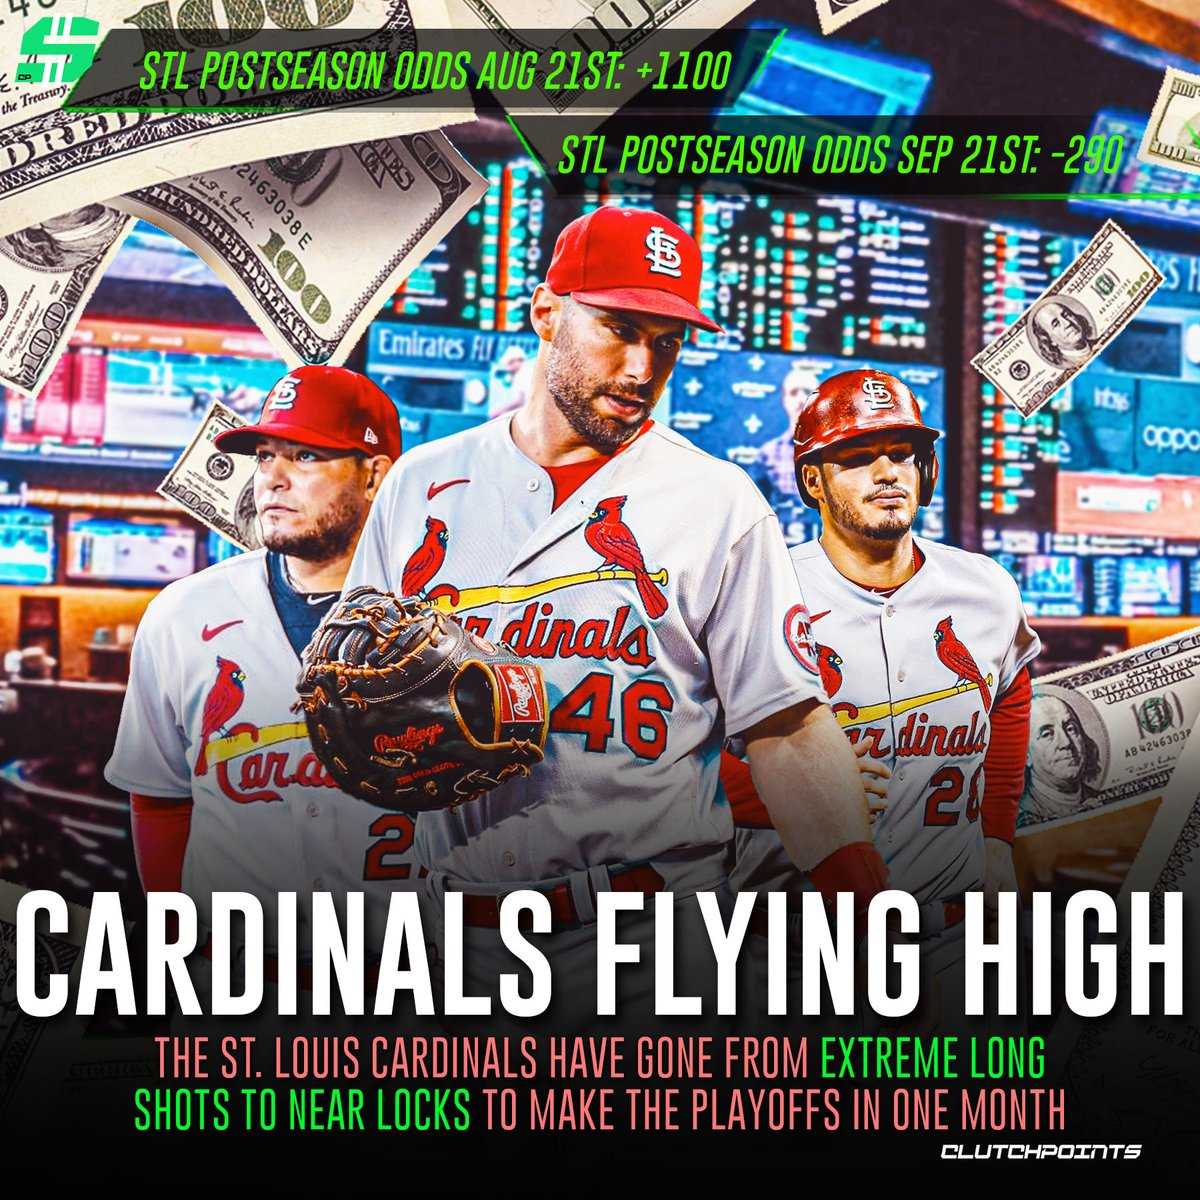 The Cardinals were 4.5 games behind the Padres, who were in the second Wild Card spot, just a month ago. Thye now have a 4.5 game advantage in the second spot 🤯